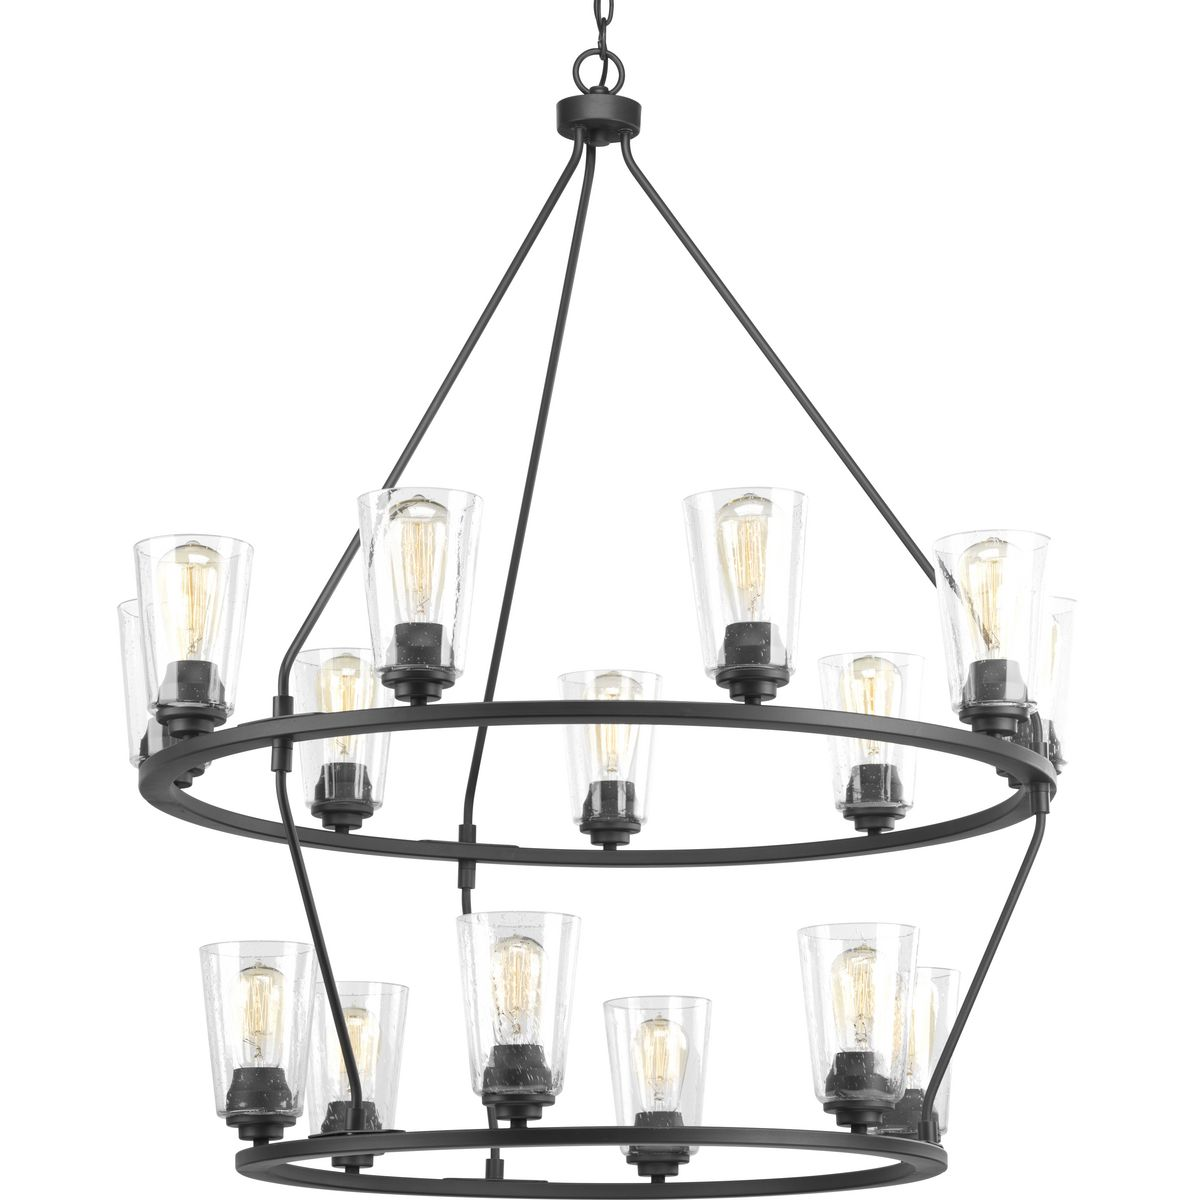 Debut Collection Fifteen Light Chandelier